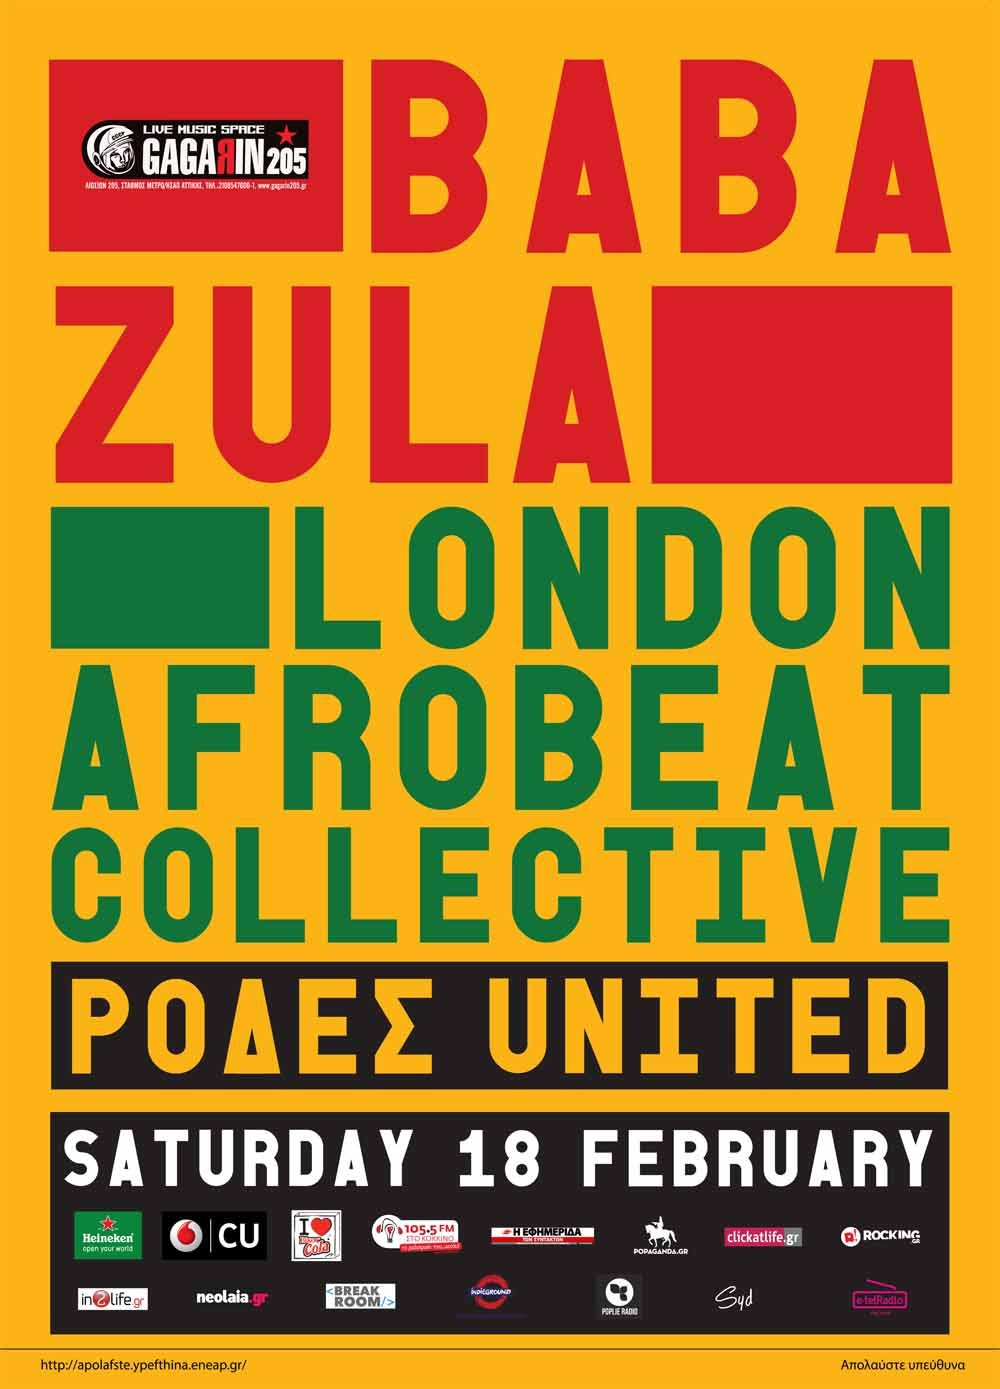 London Afrobeat Collective Food Chain